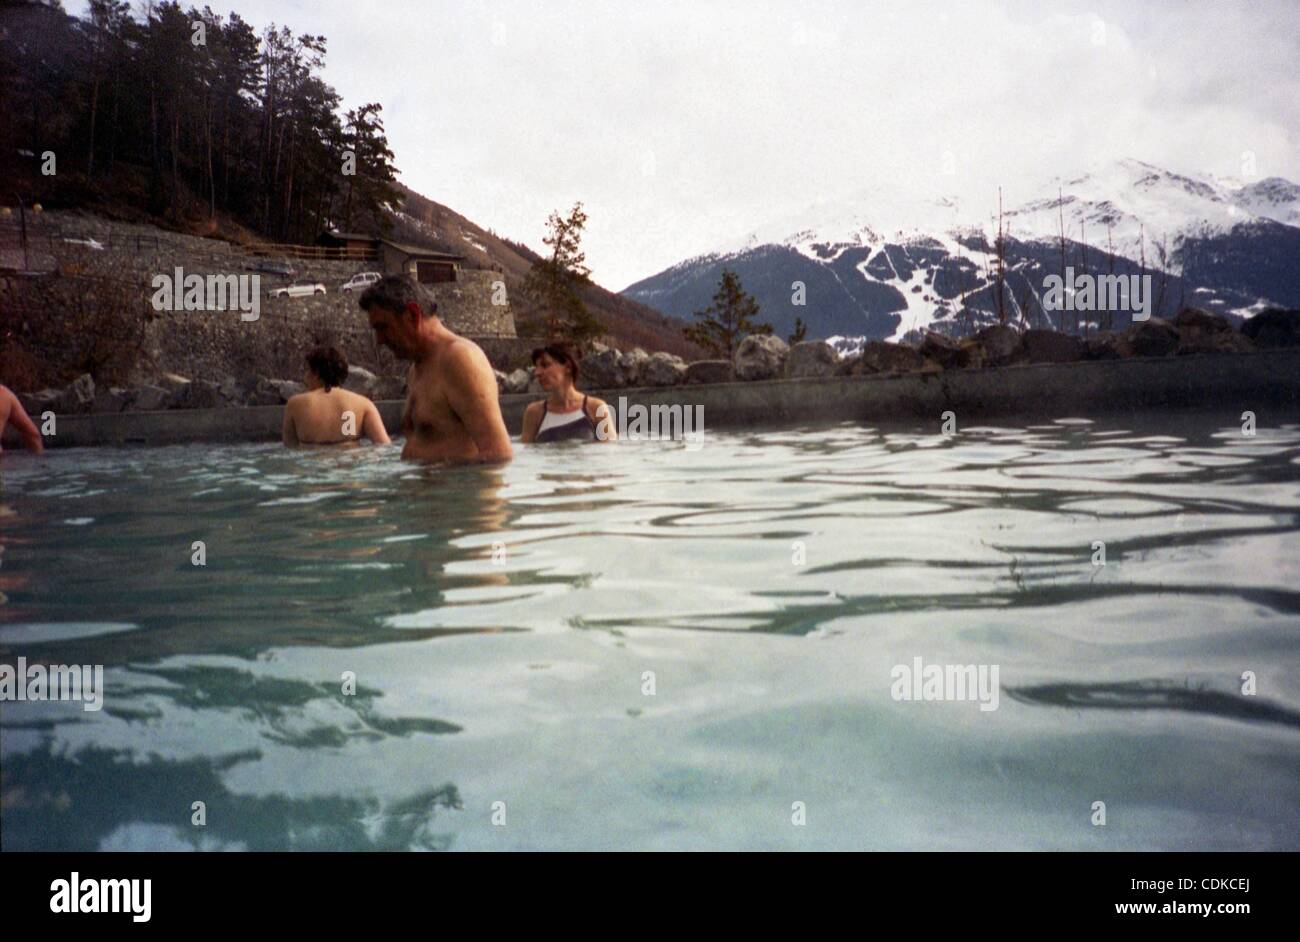 Mar 16, 2011 - Bormio, Italy - Open Air Hot Springs Pool Overlooking ...